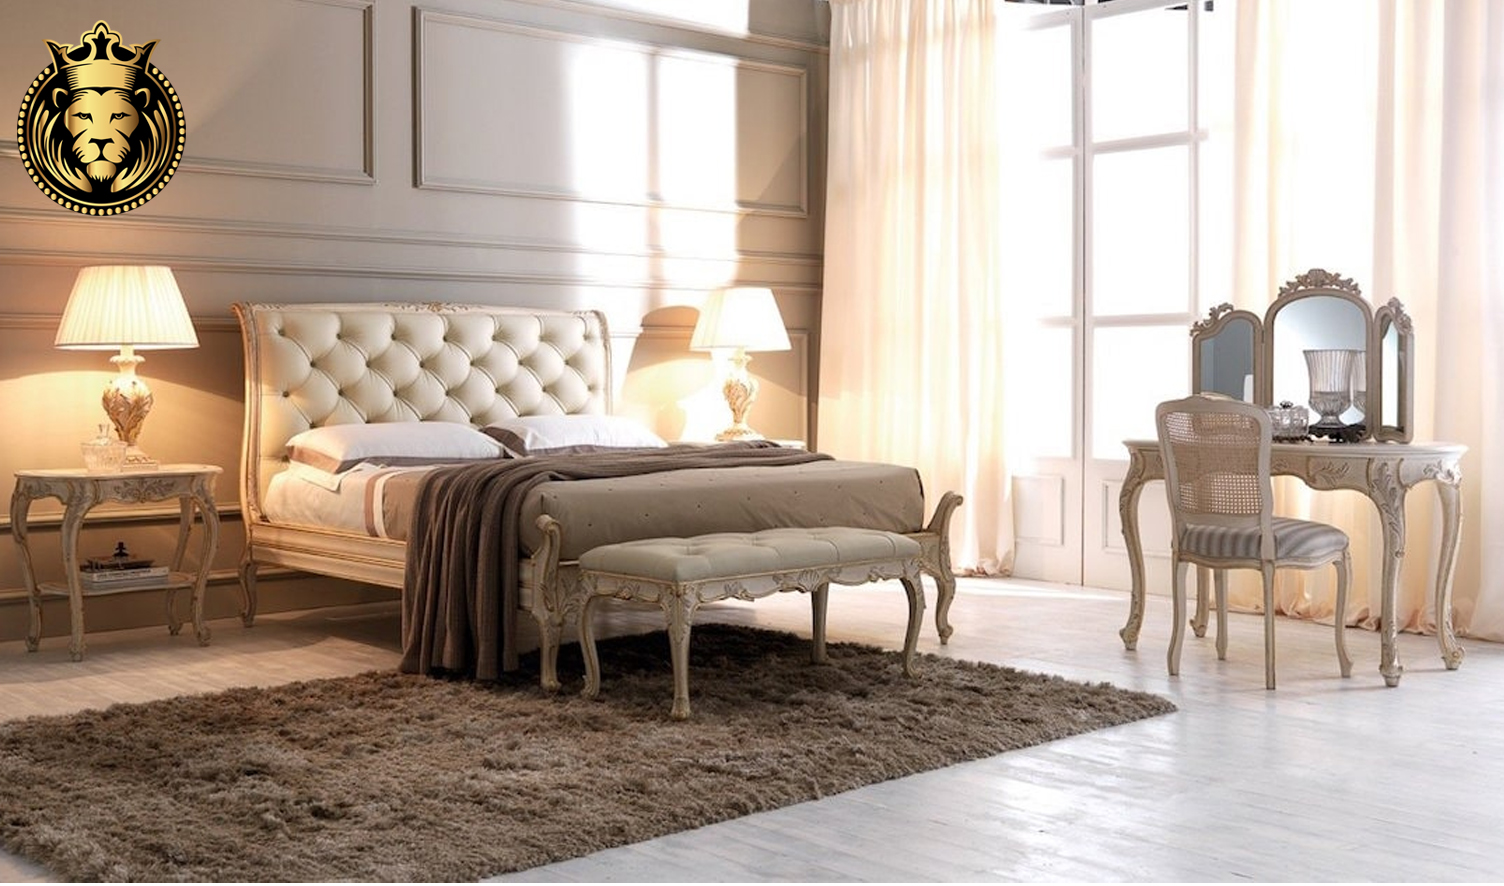 Clara Classic Style Carving Bedroom furniture